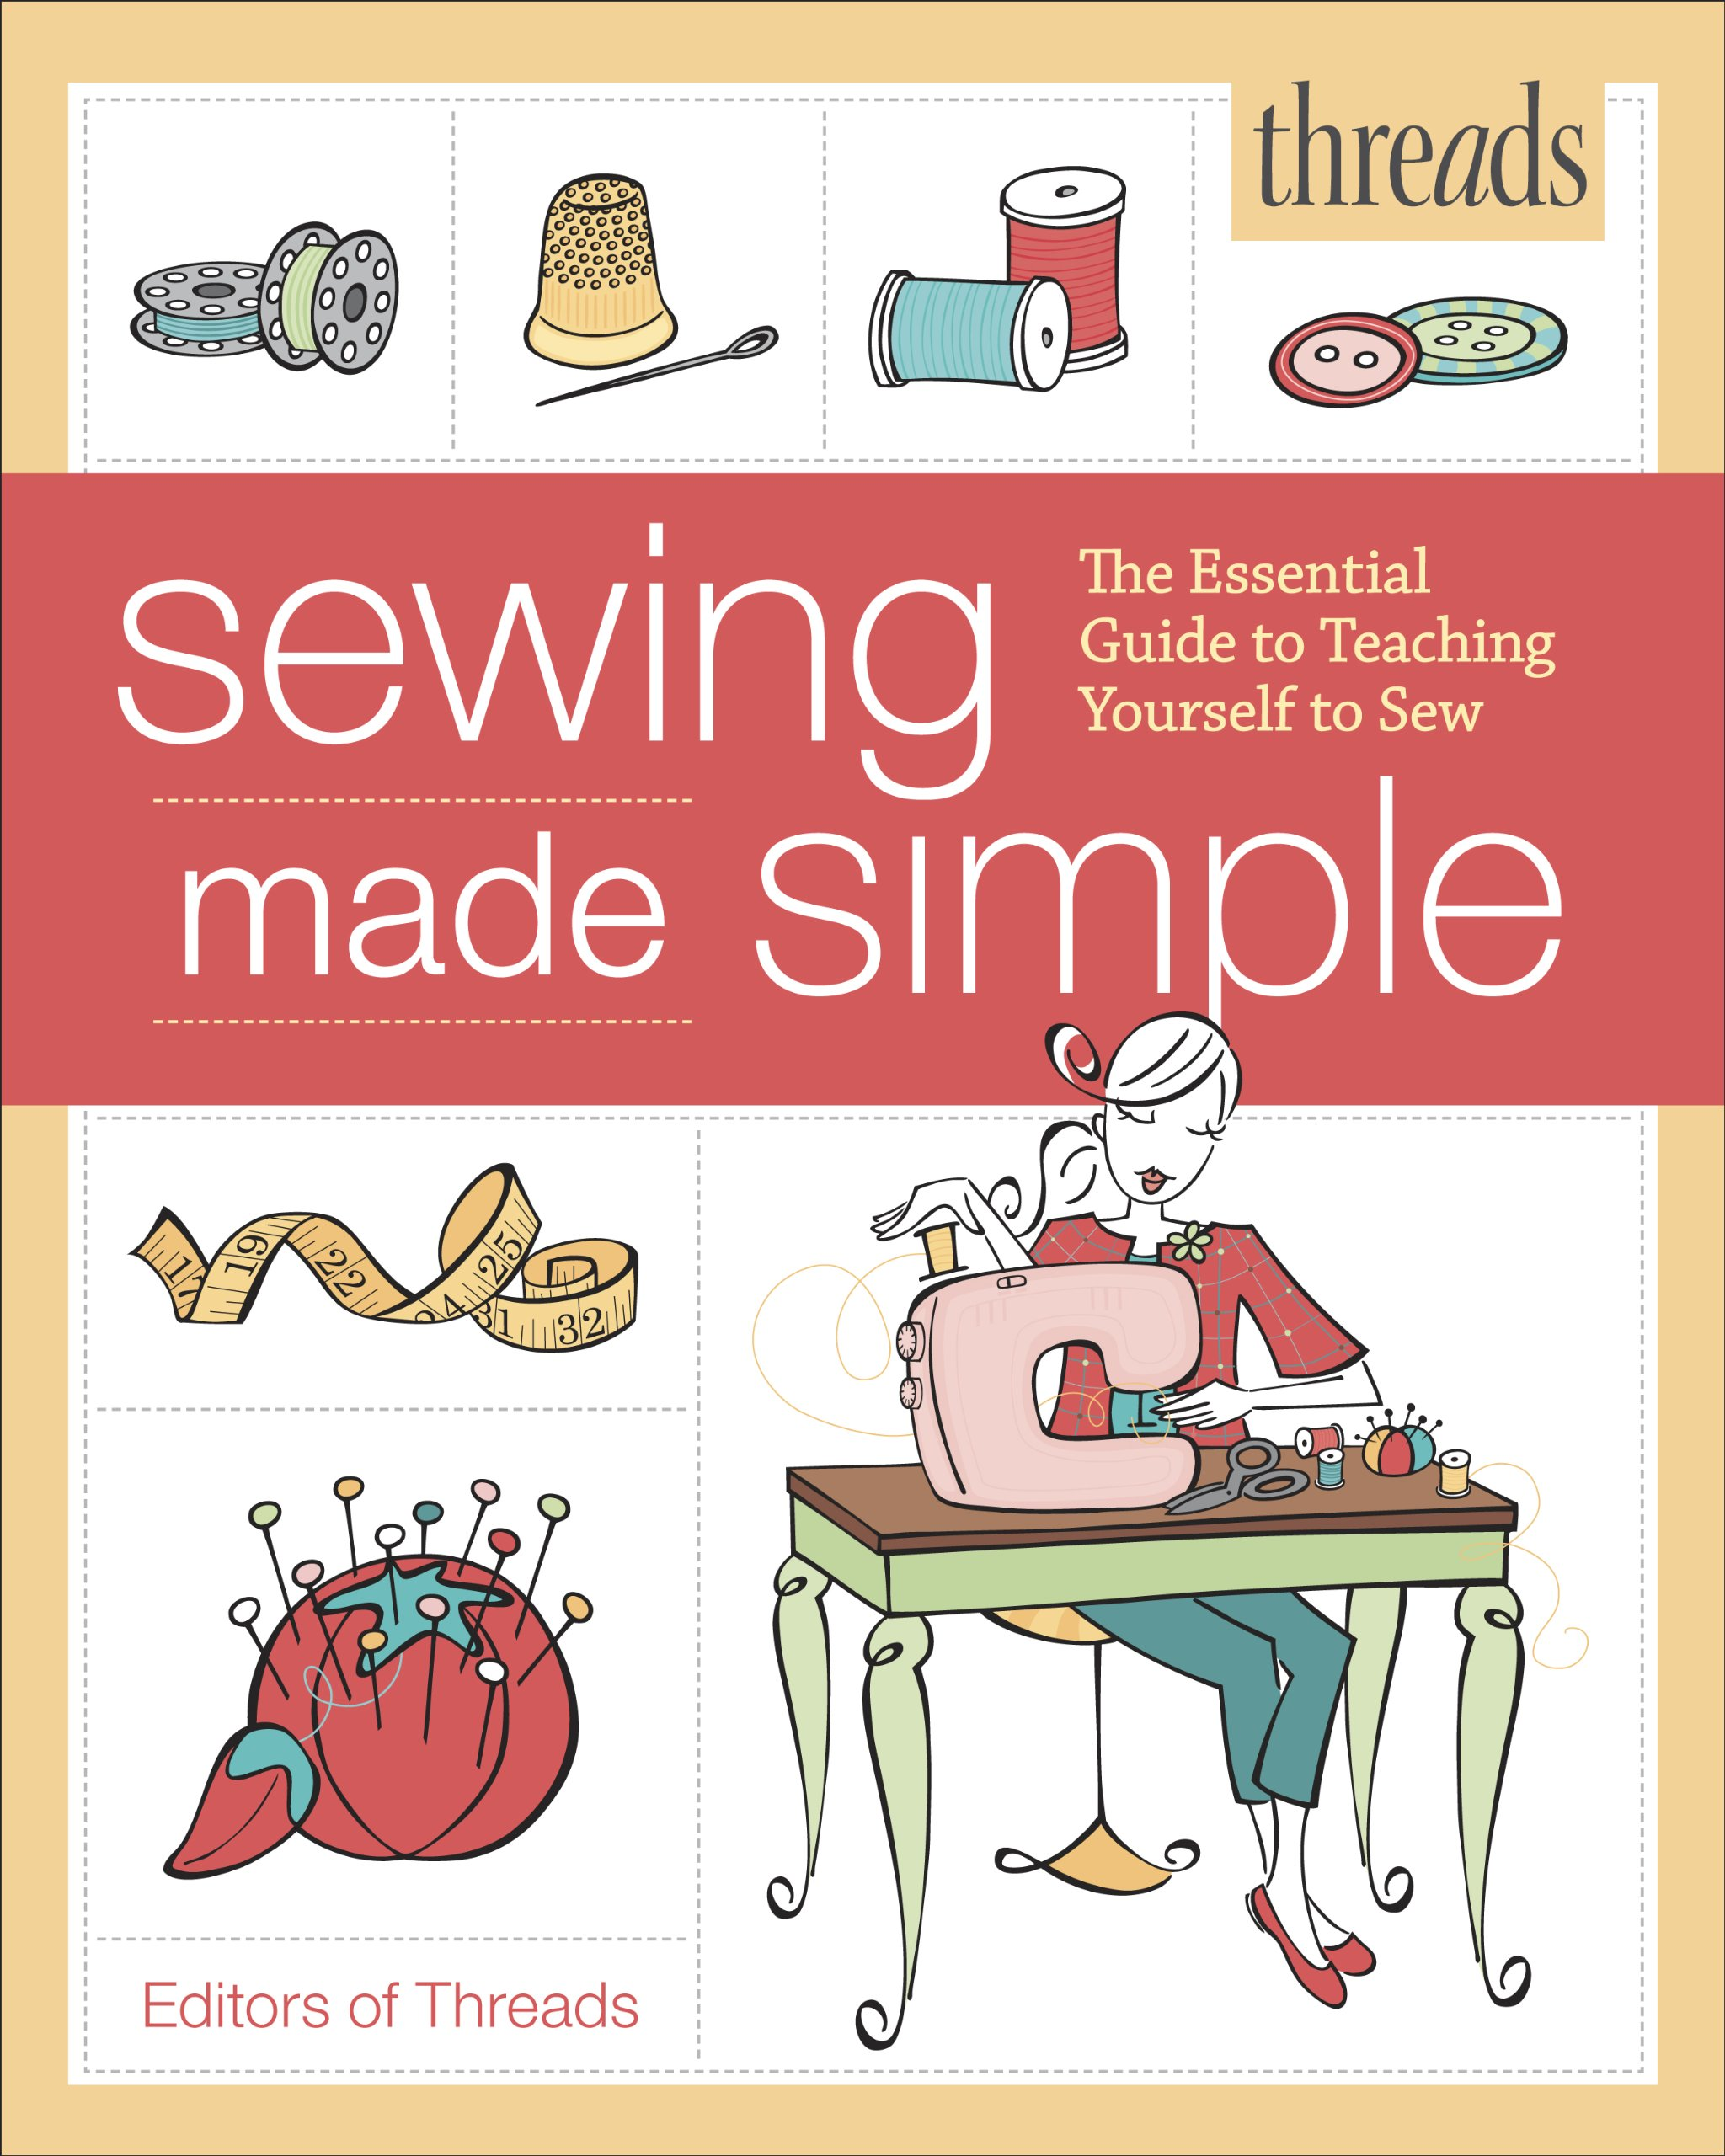 Download Threads Sewing Made Simple: The Essential Guide to Teaching Yourself to Sew ebook